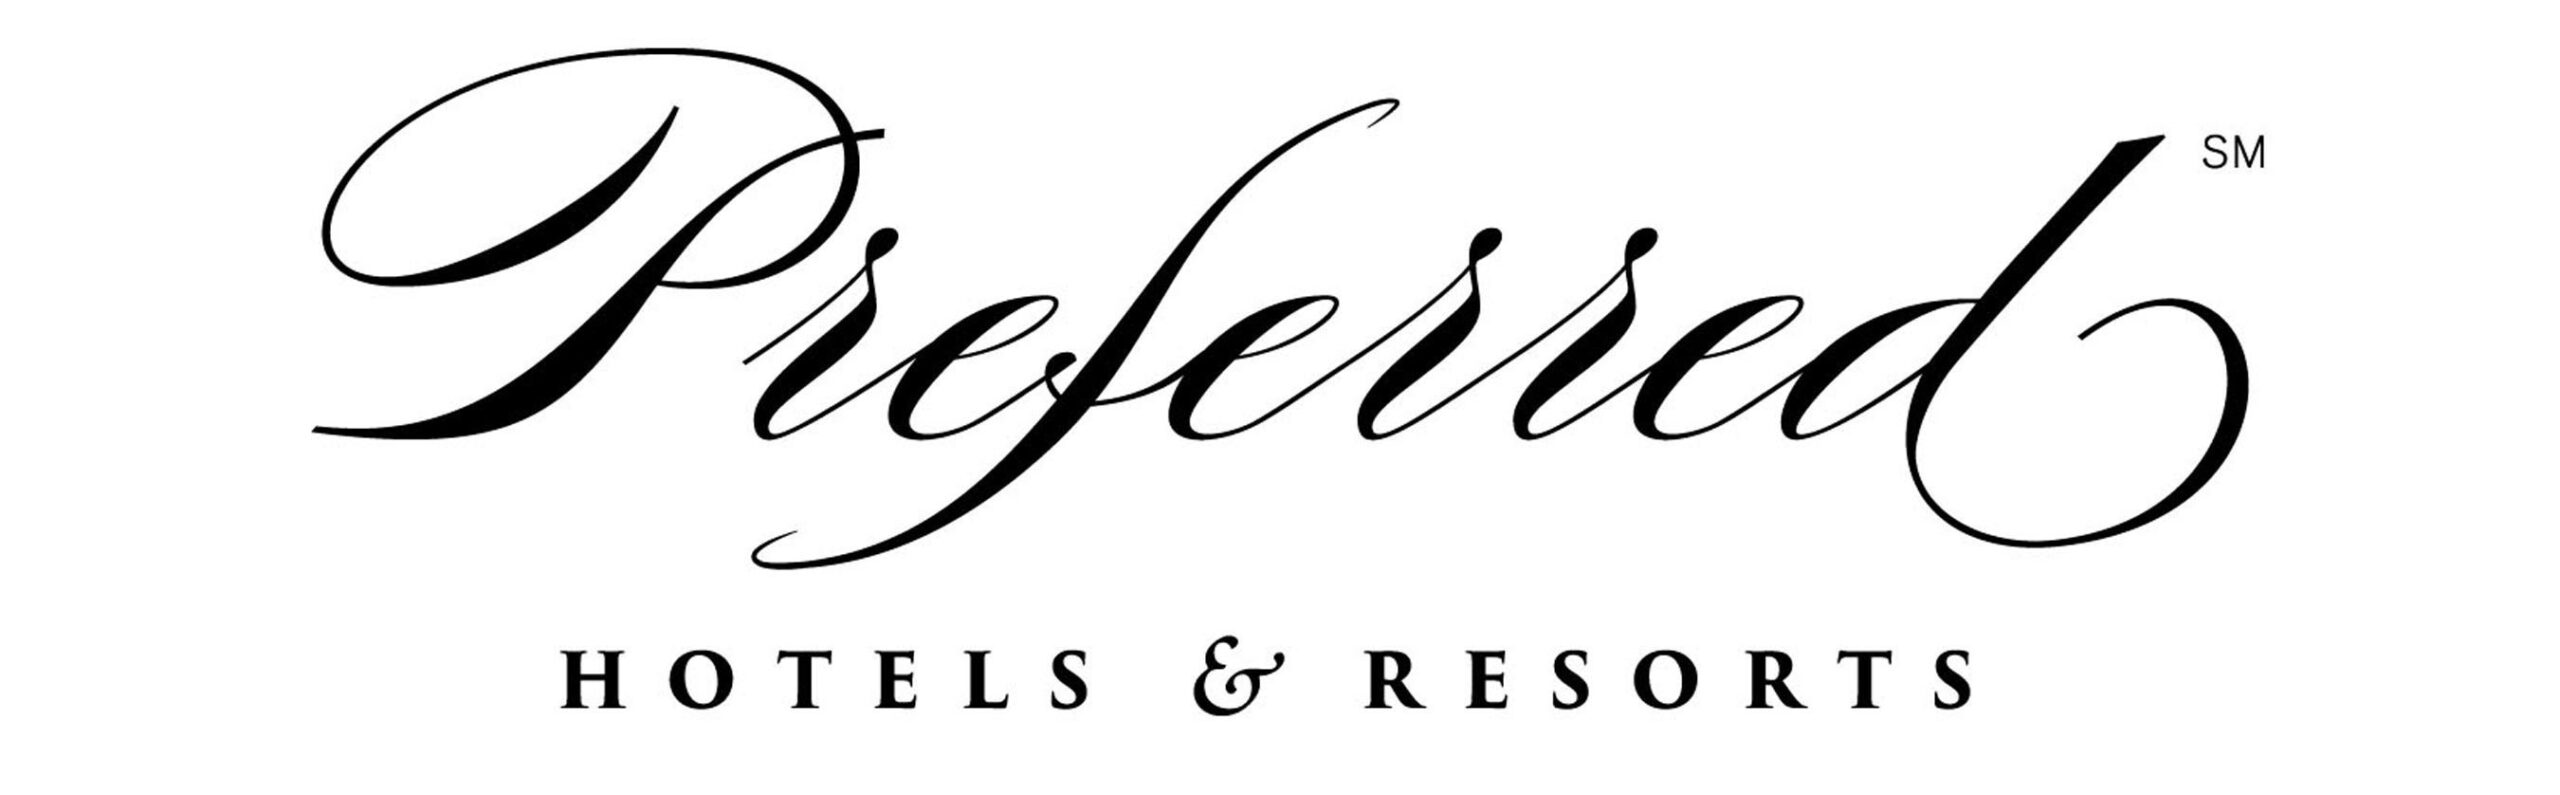 preferred hotels and resorts logo